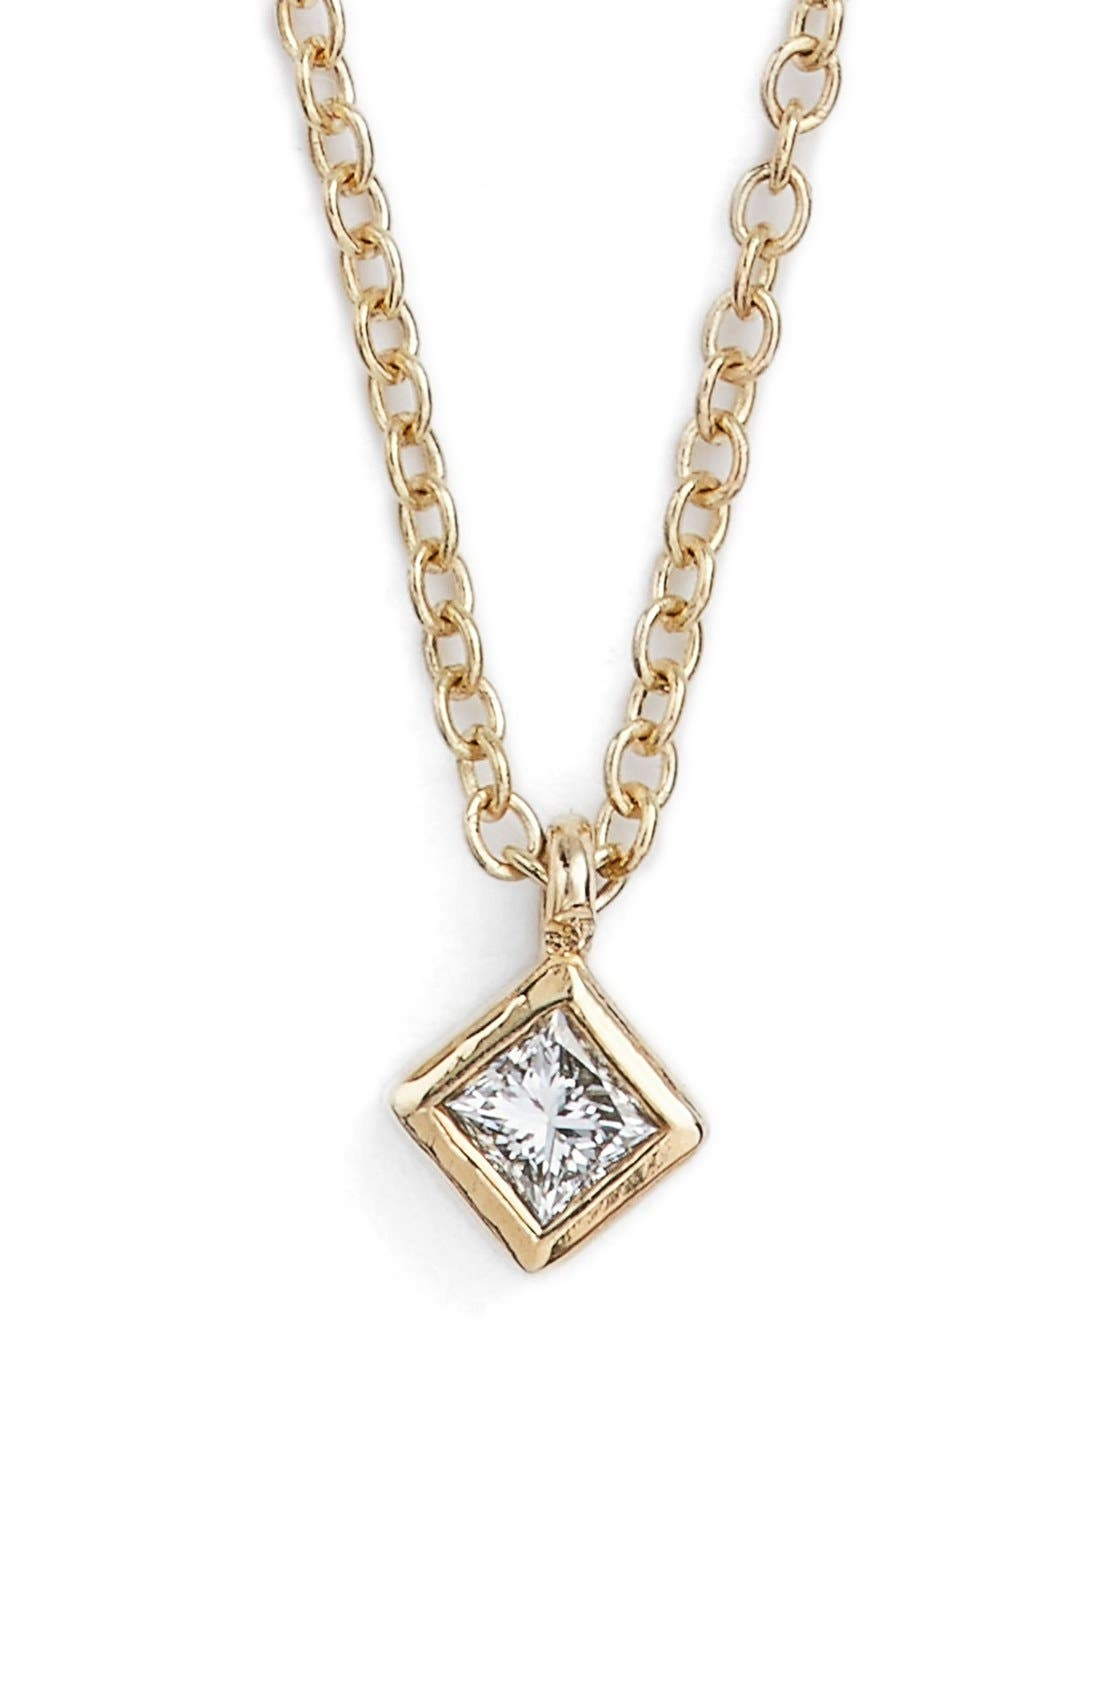 ZOË CHICCO Princess Diamond Pendant Necklace